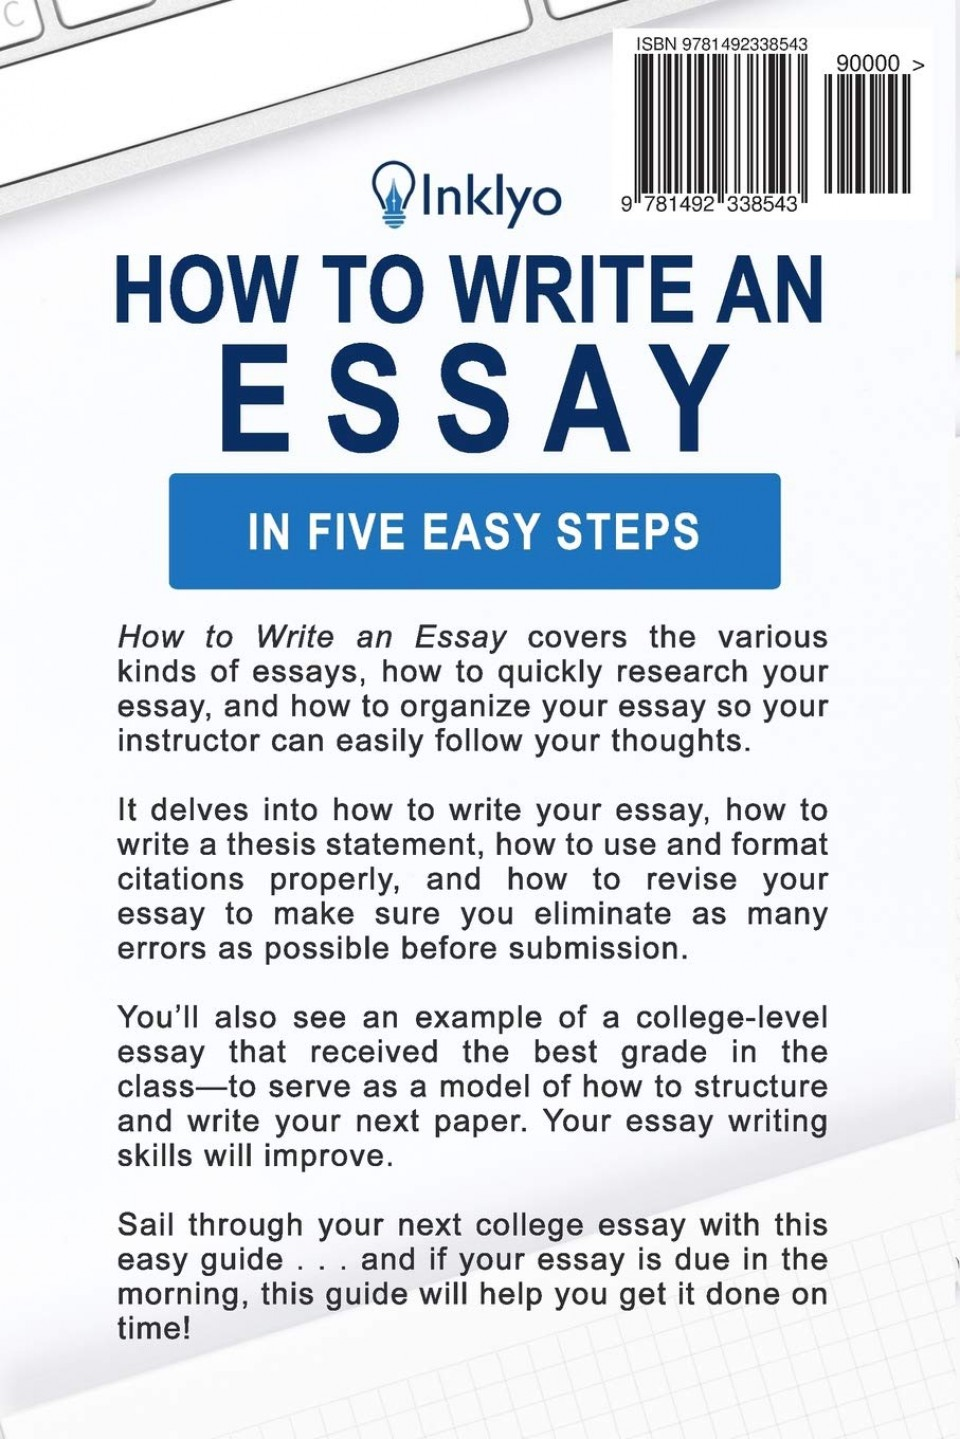 013 Essay Example 71v7ckw5pll Writing Striking A Creative About Yourself College Outline 5 Steps To 960